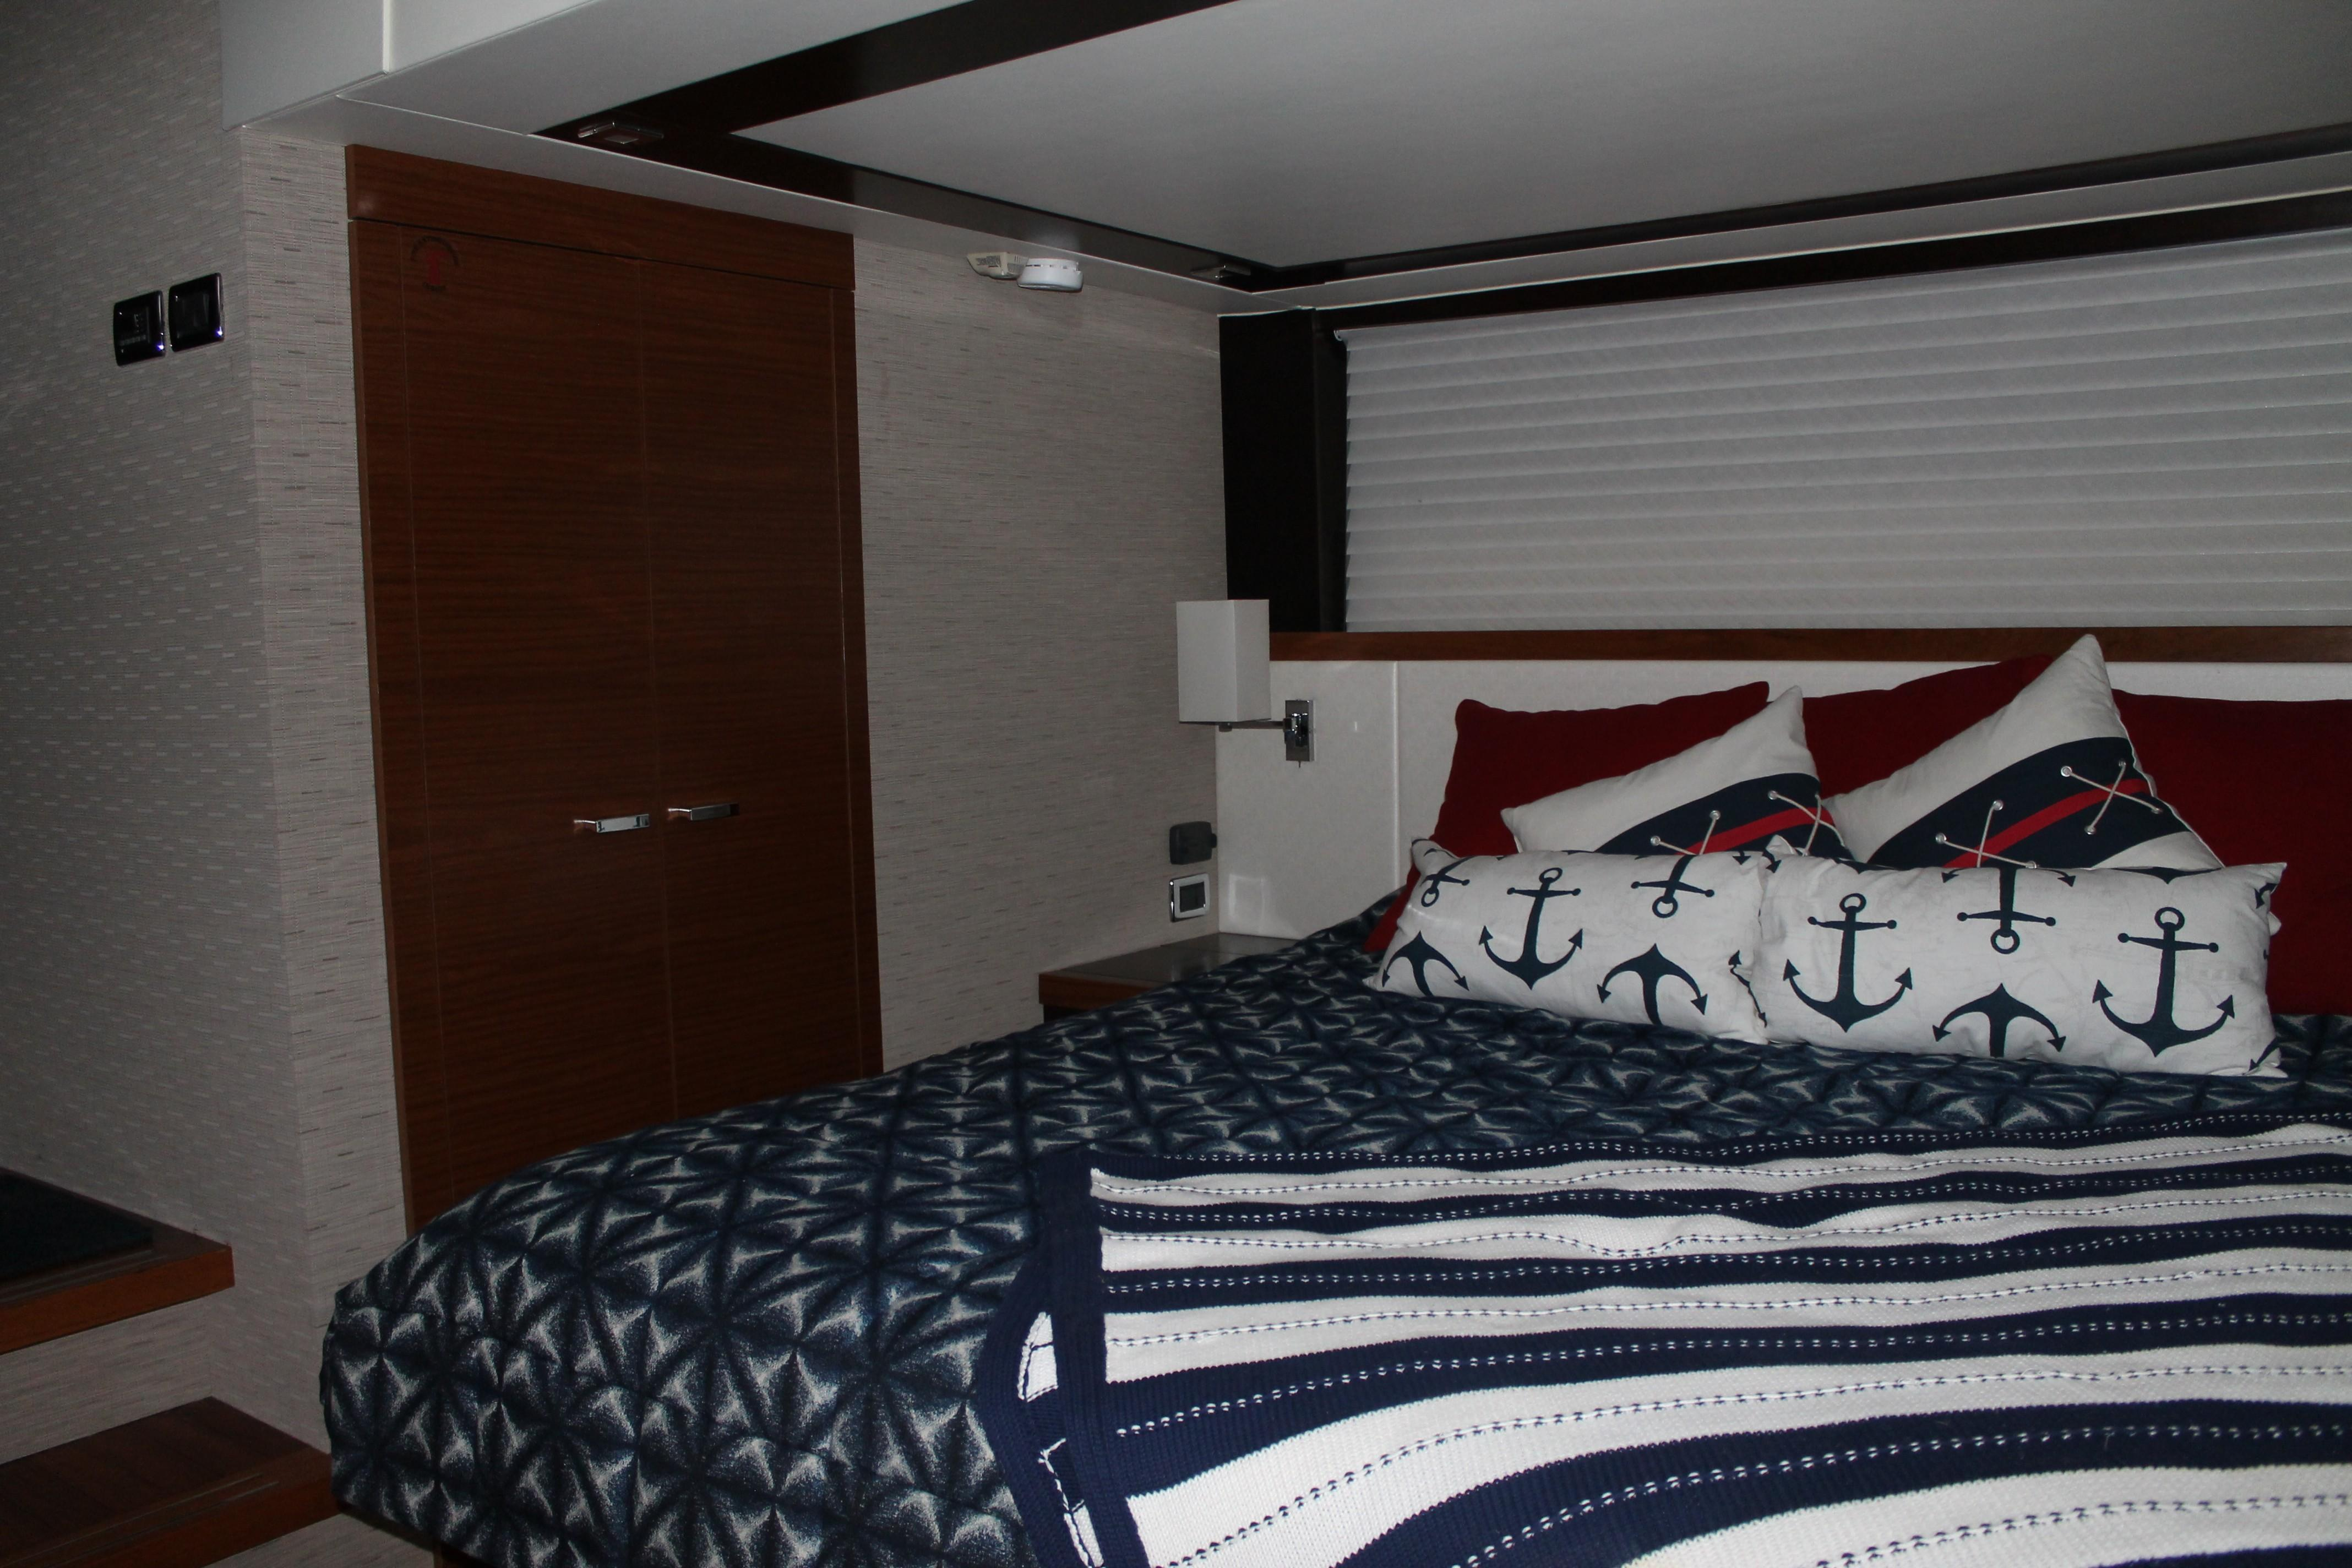 Owner Stateroom 2